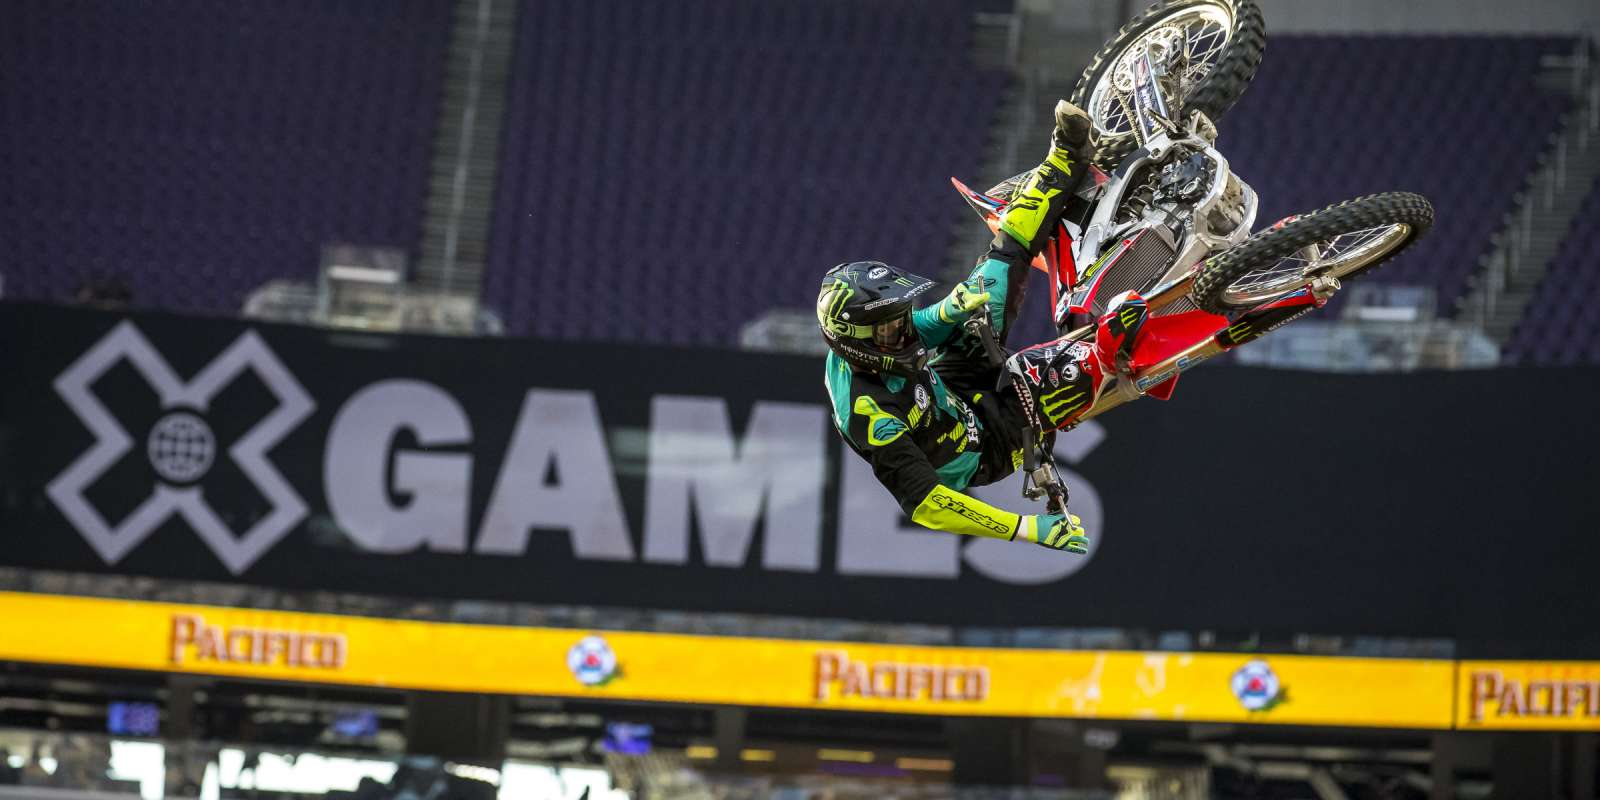 Monster athletes compete in the 2018 FMX Summer X Games in Minneapolis